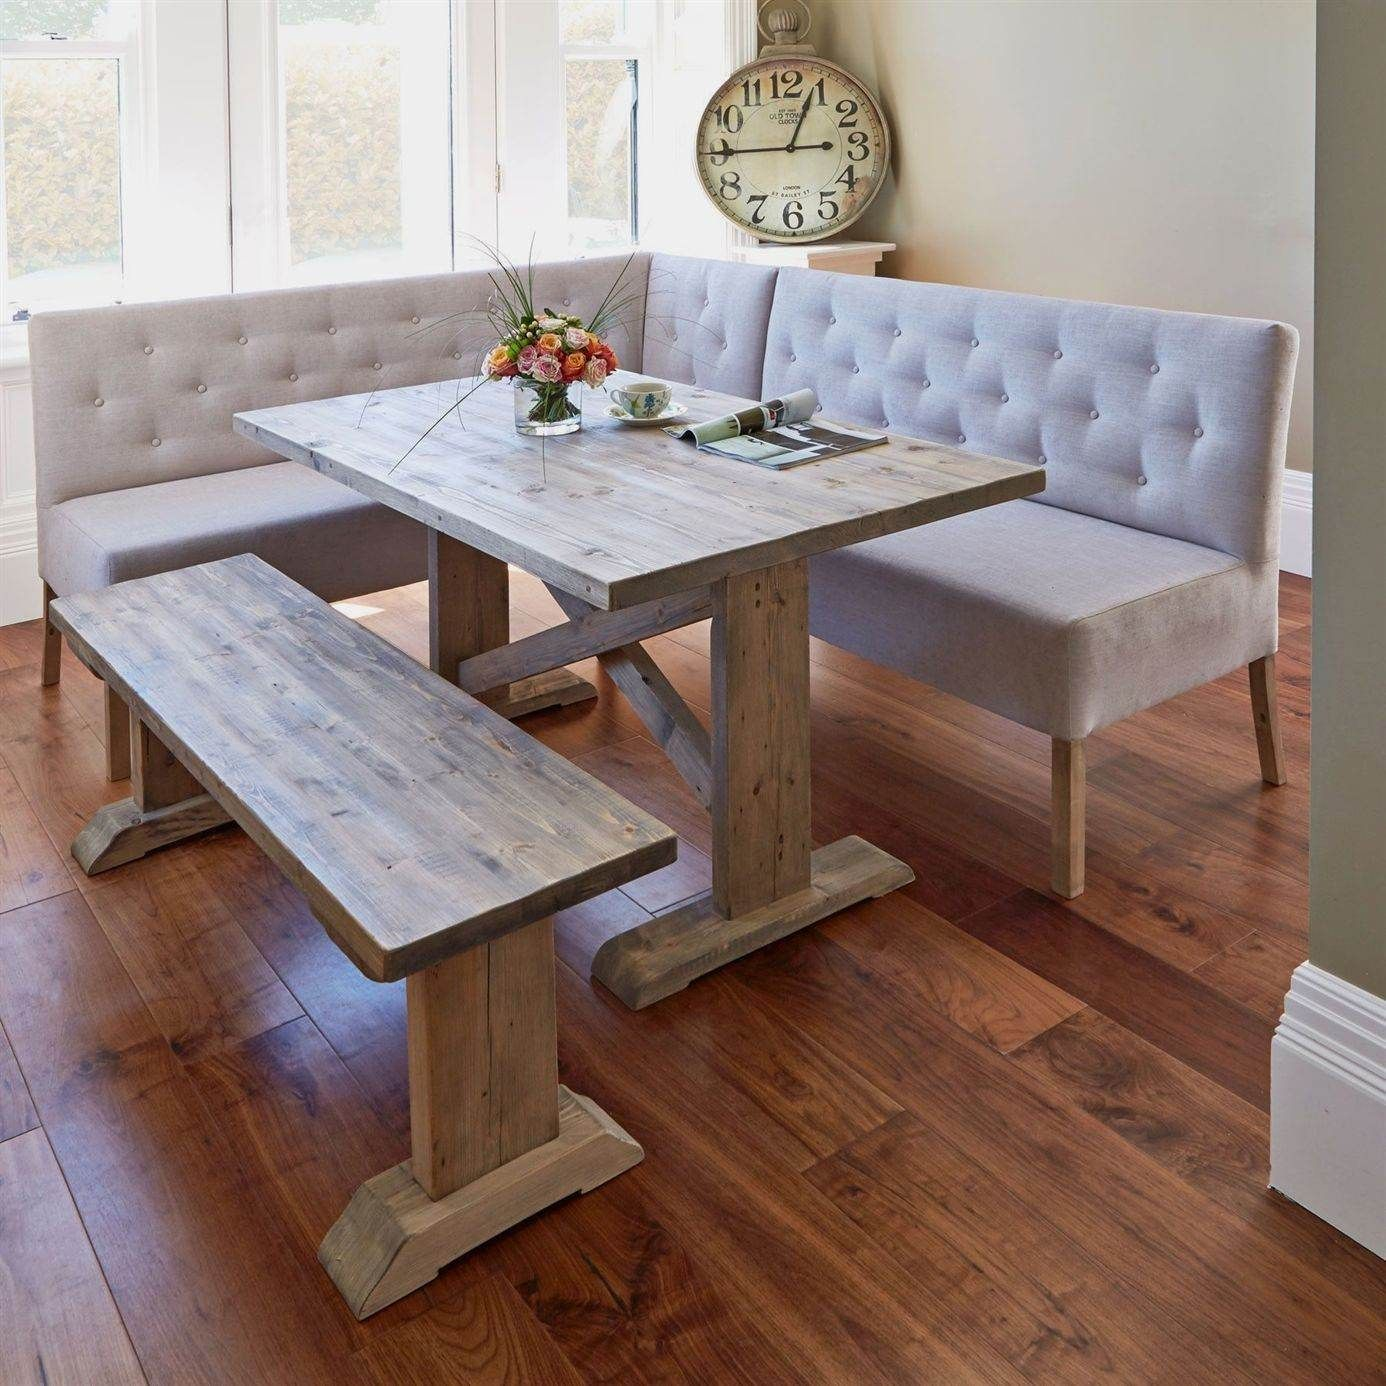 Dining Room Bench Seating With Storage Check More At Https 2020homedesign Com Dining Room Bench Seating With S Di 2020 Desain Interior Interior Desain Interior Rumah